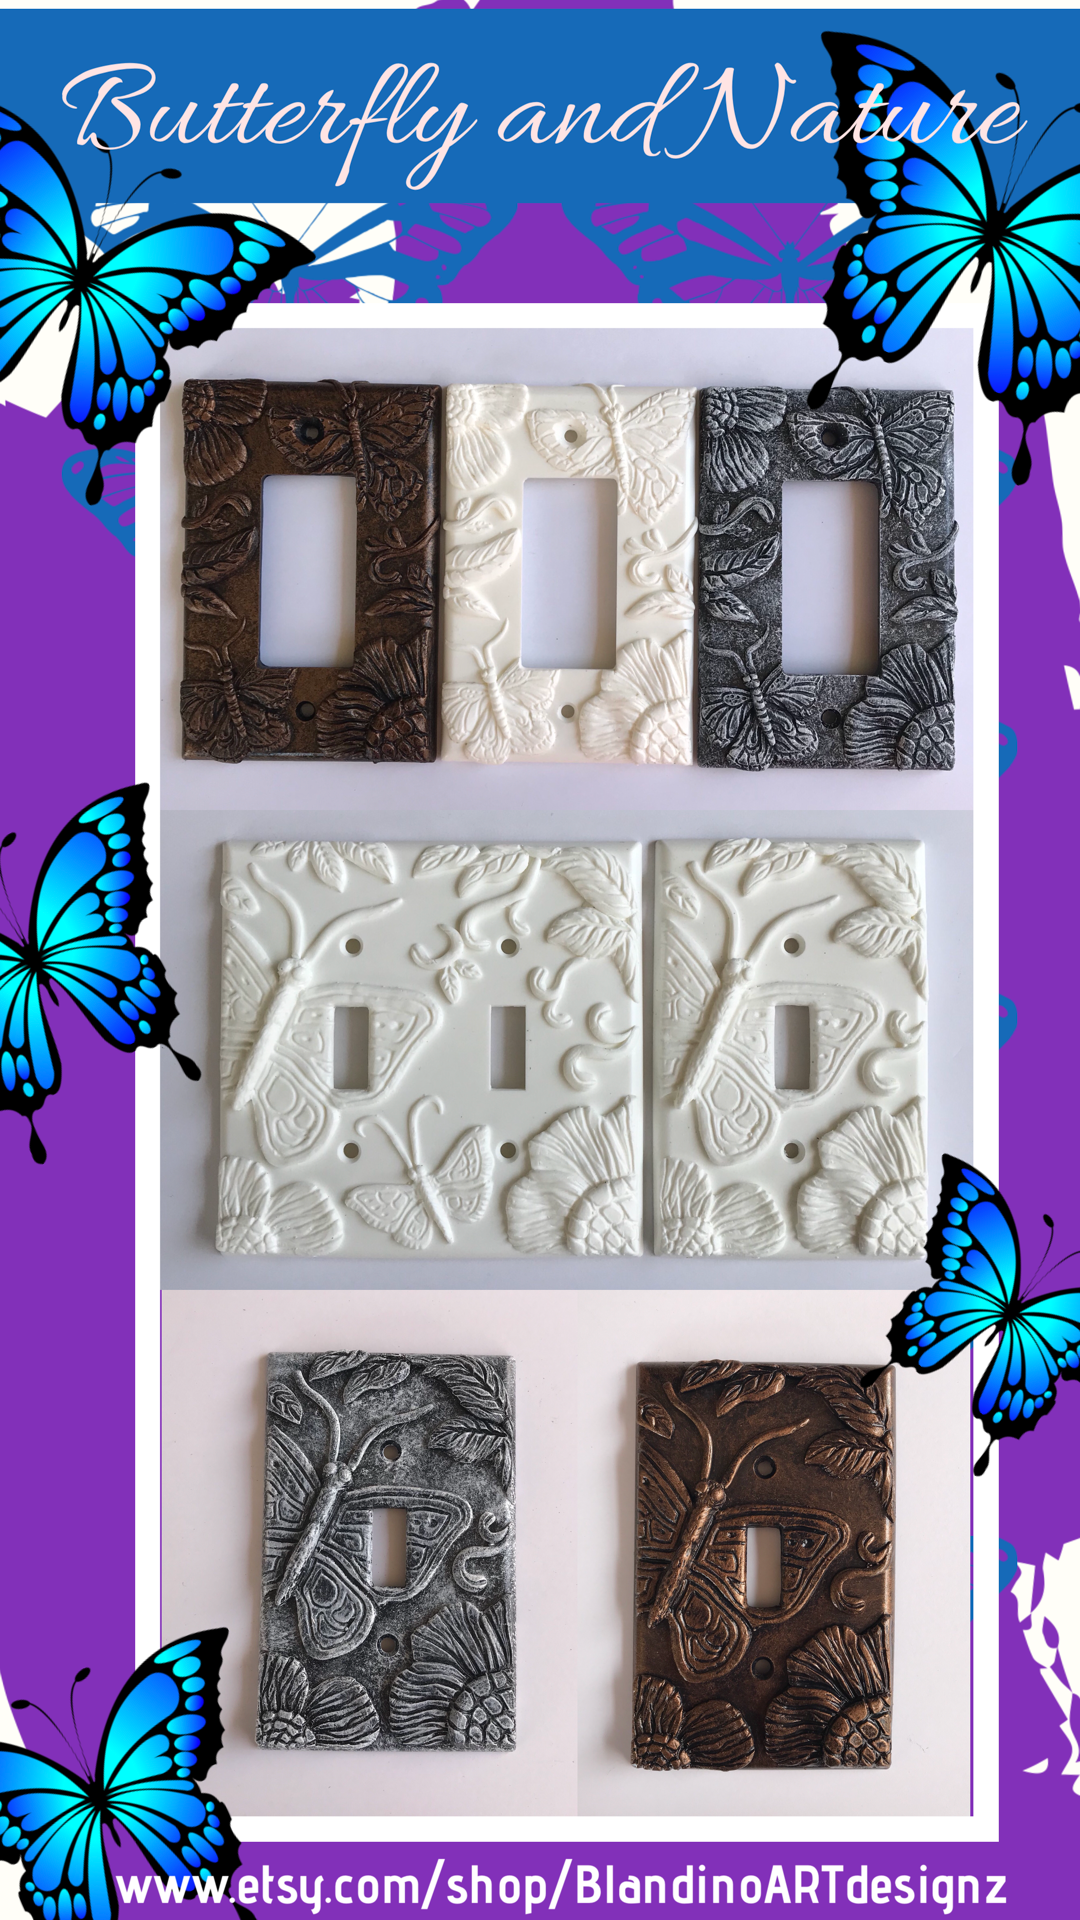 Three dimensional hand crafted light switch plates